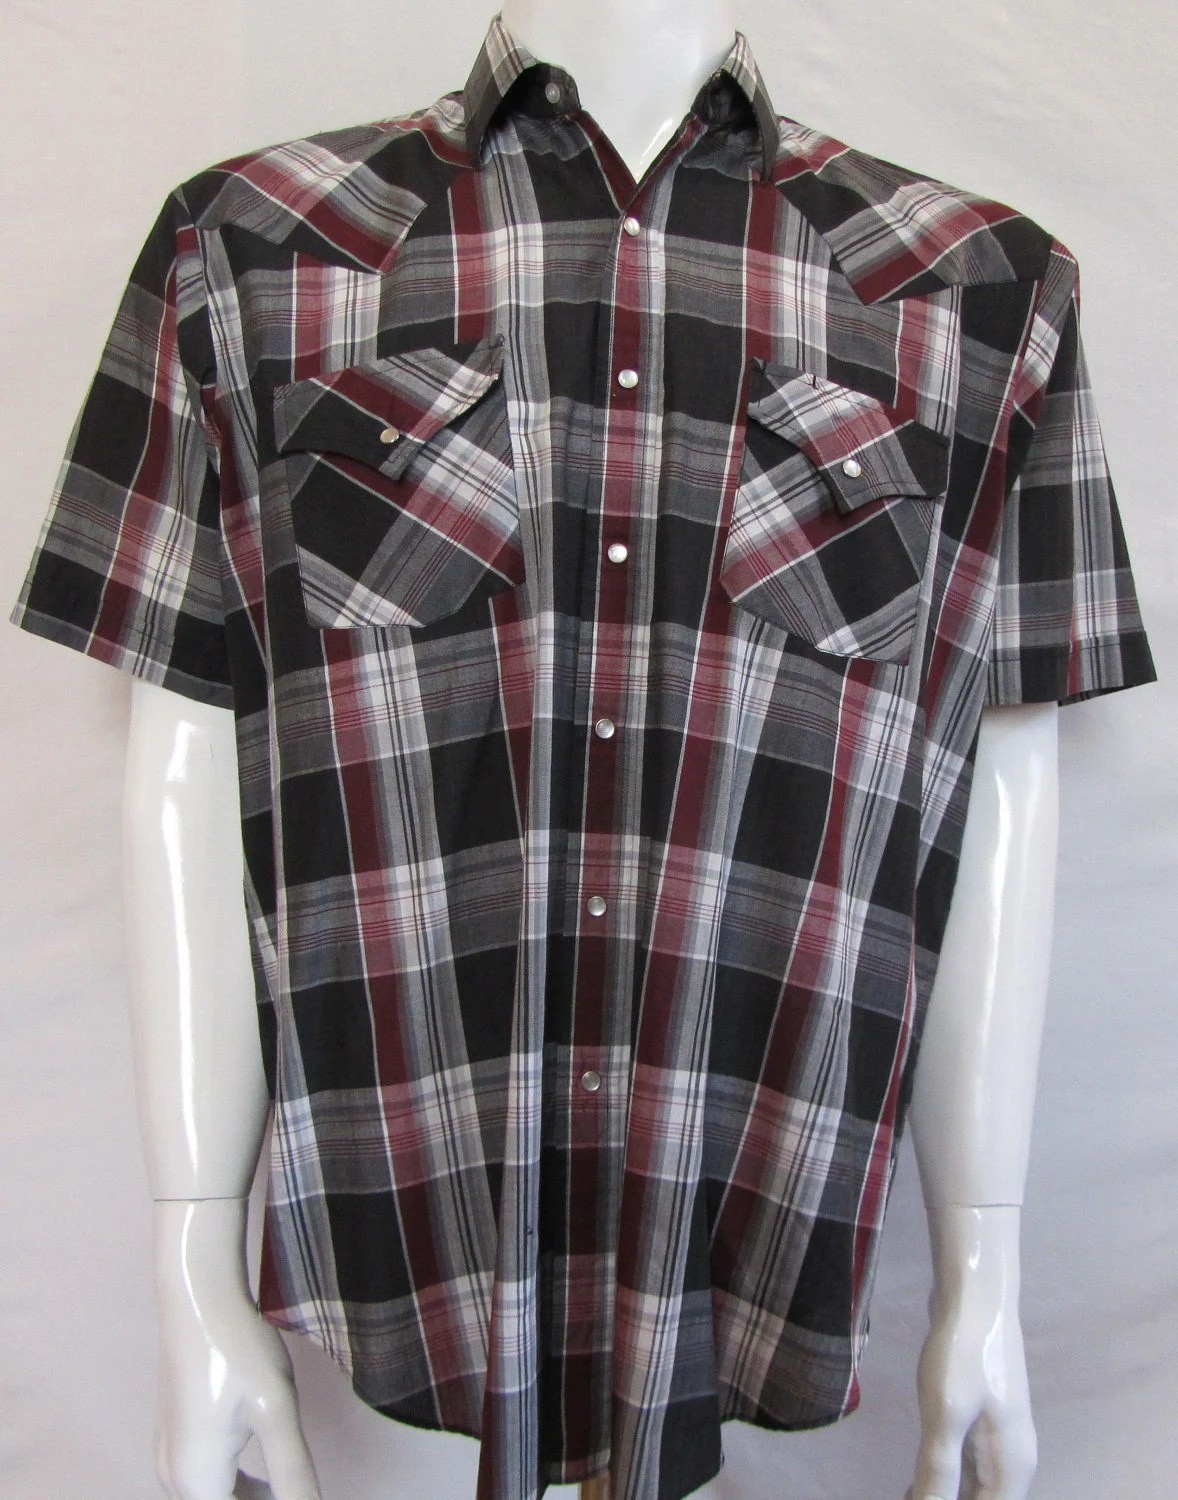 Mens LARGE cowboy shirt, Ely Plains, short sleeved, vintage, black gray maroon plaid, pearl snaps